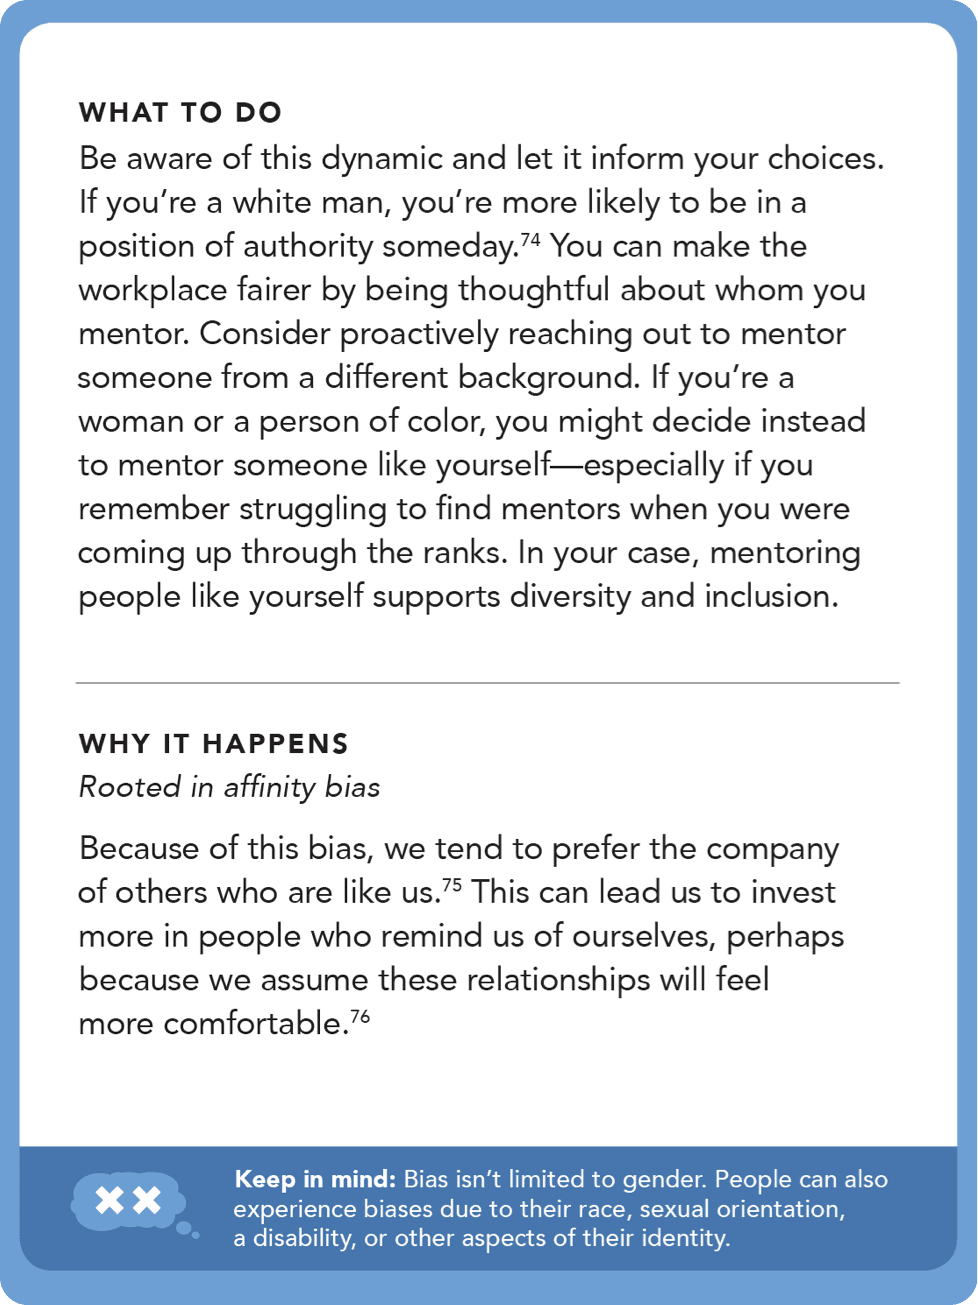 Back of card: What to do - You can make the workplace fairer by being thoughtful about whom you mentor. Consider proactively reaching out to mentor someone from a different background.